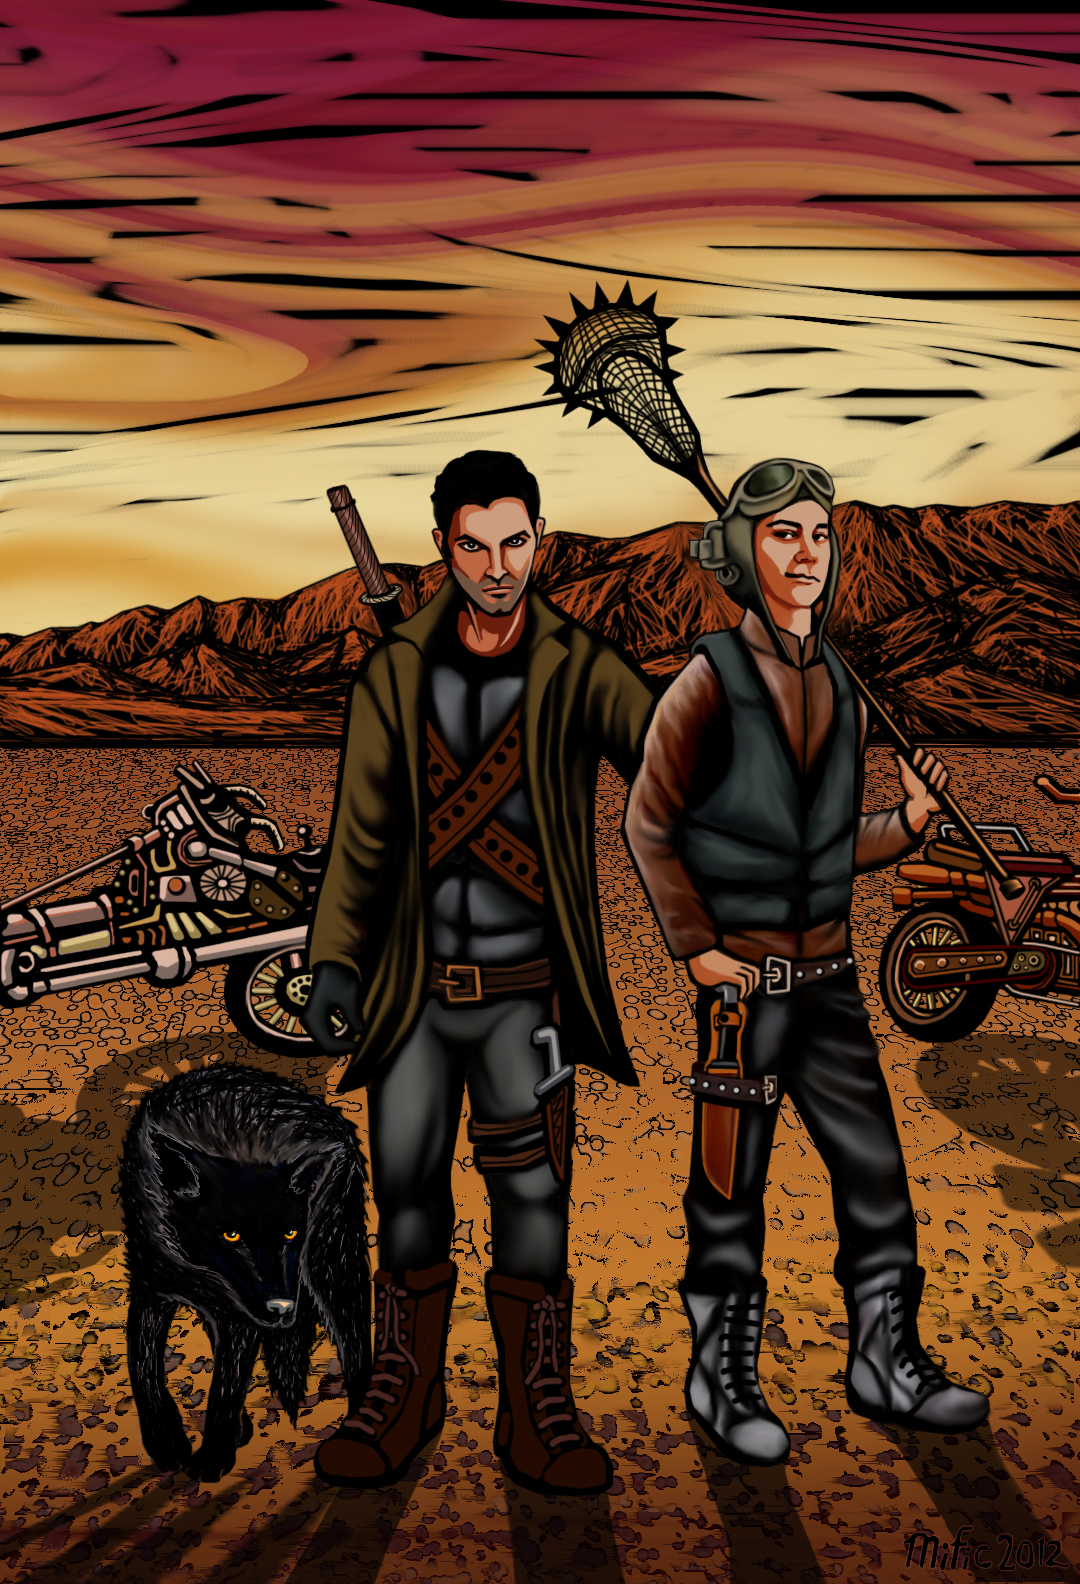 Derek and stiles in a desert with weapons, a wolf and weird bikes.